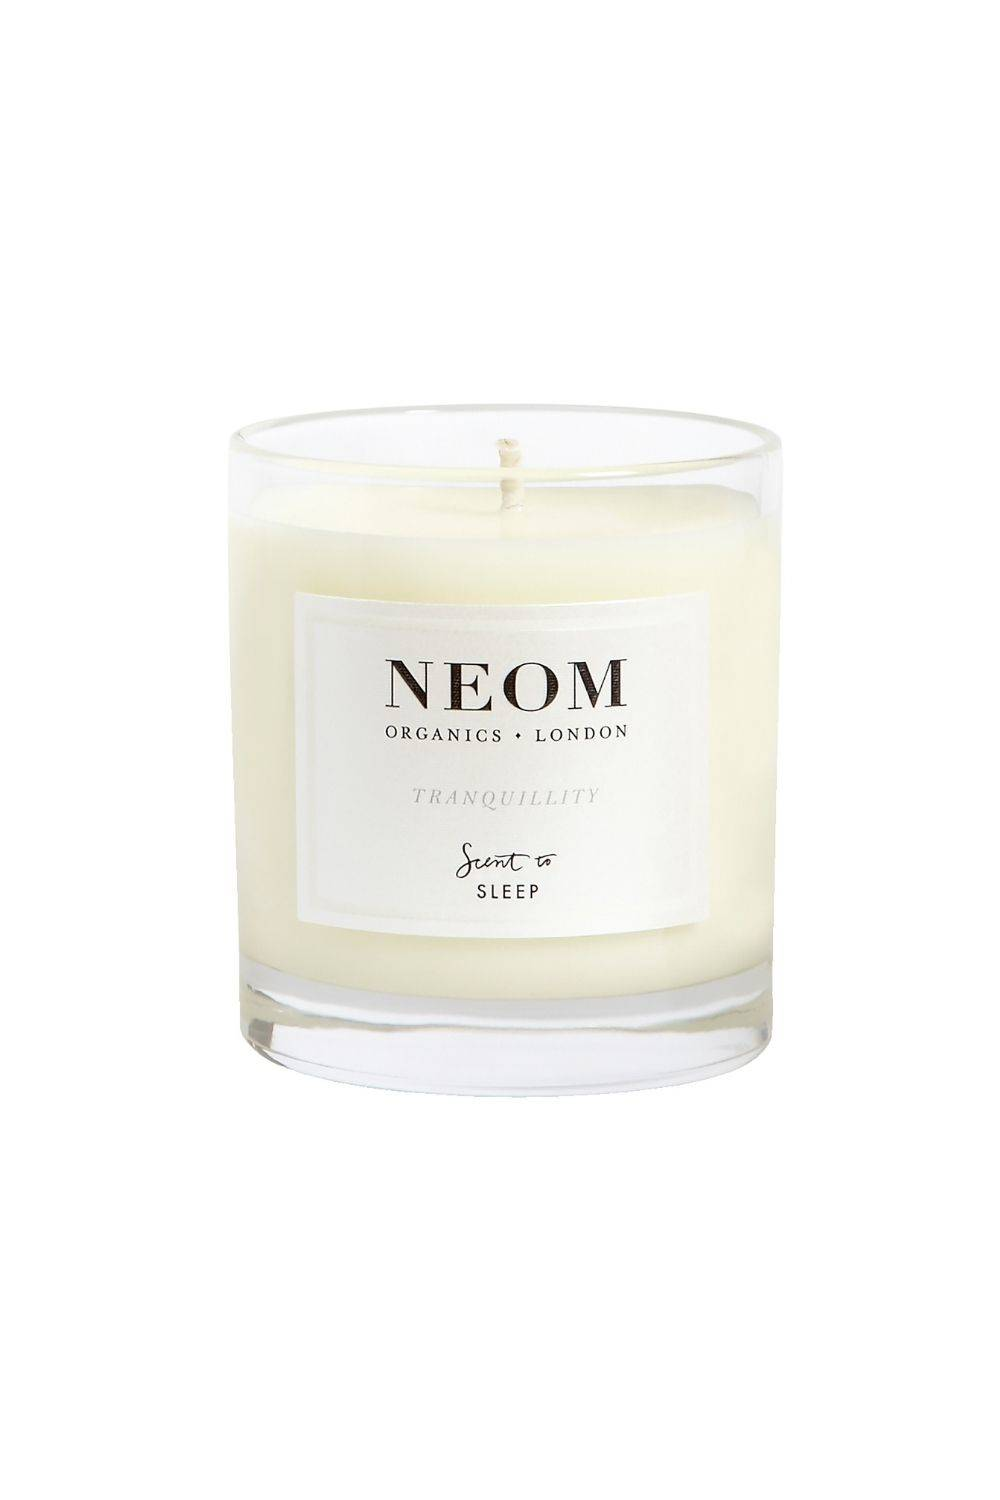 NEOM Perfect Night's Sleep Basil, Jasmine & Lavender Scented Travel Sleeping Candle